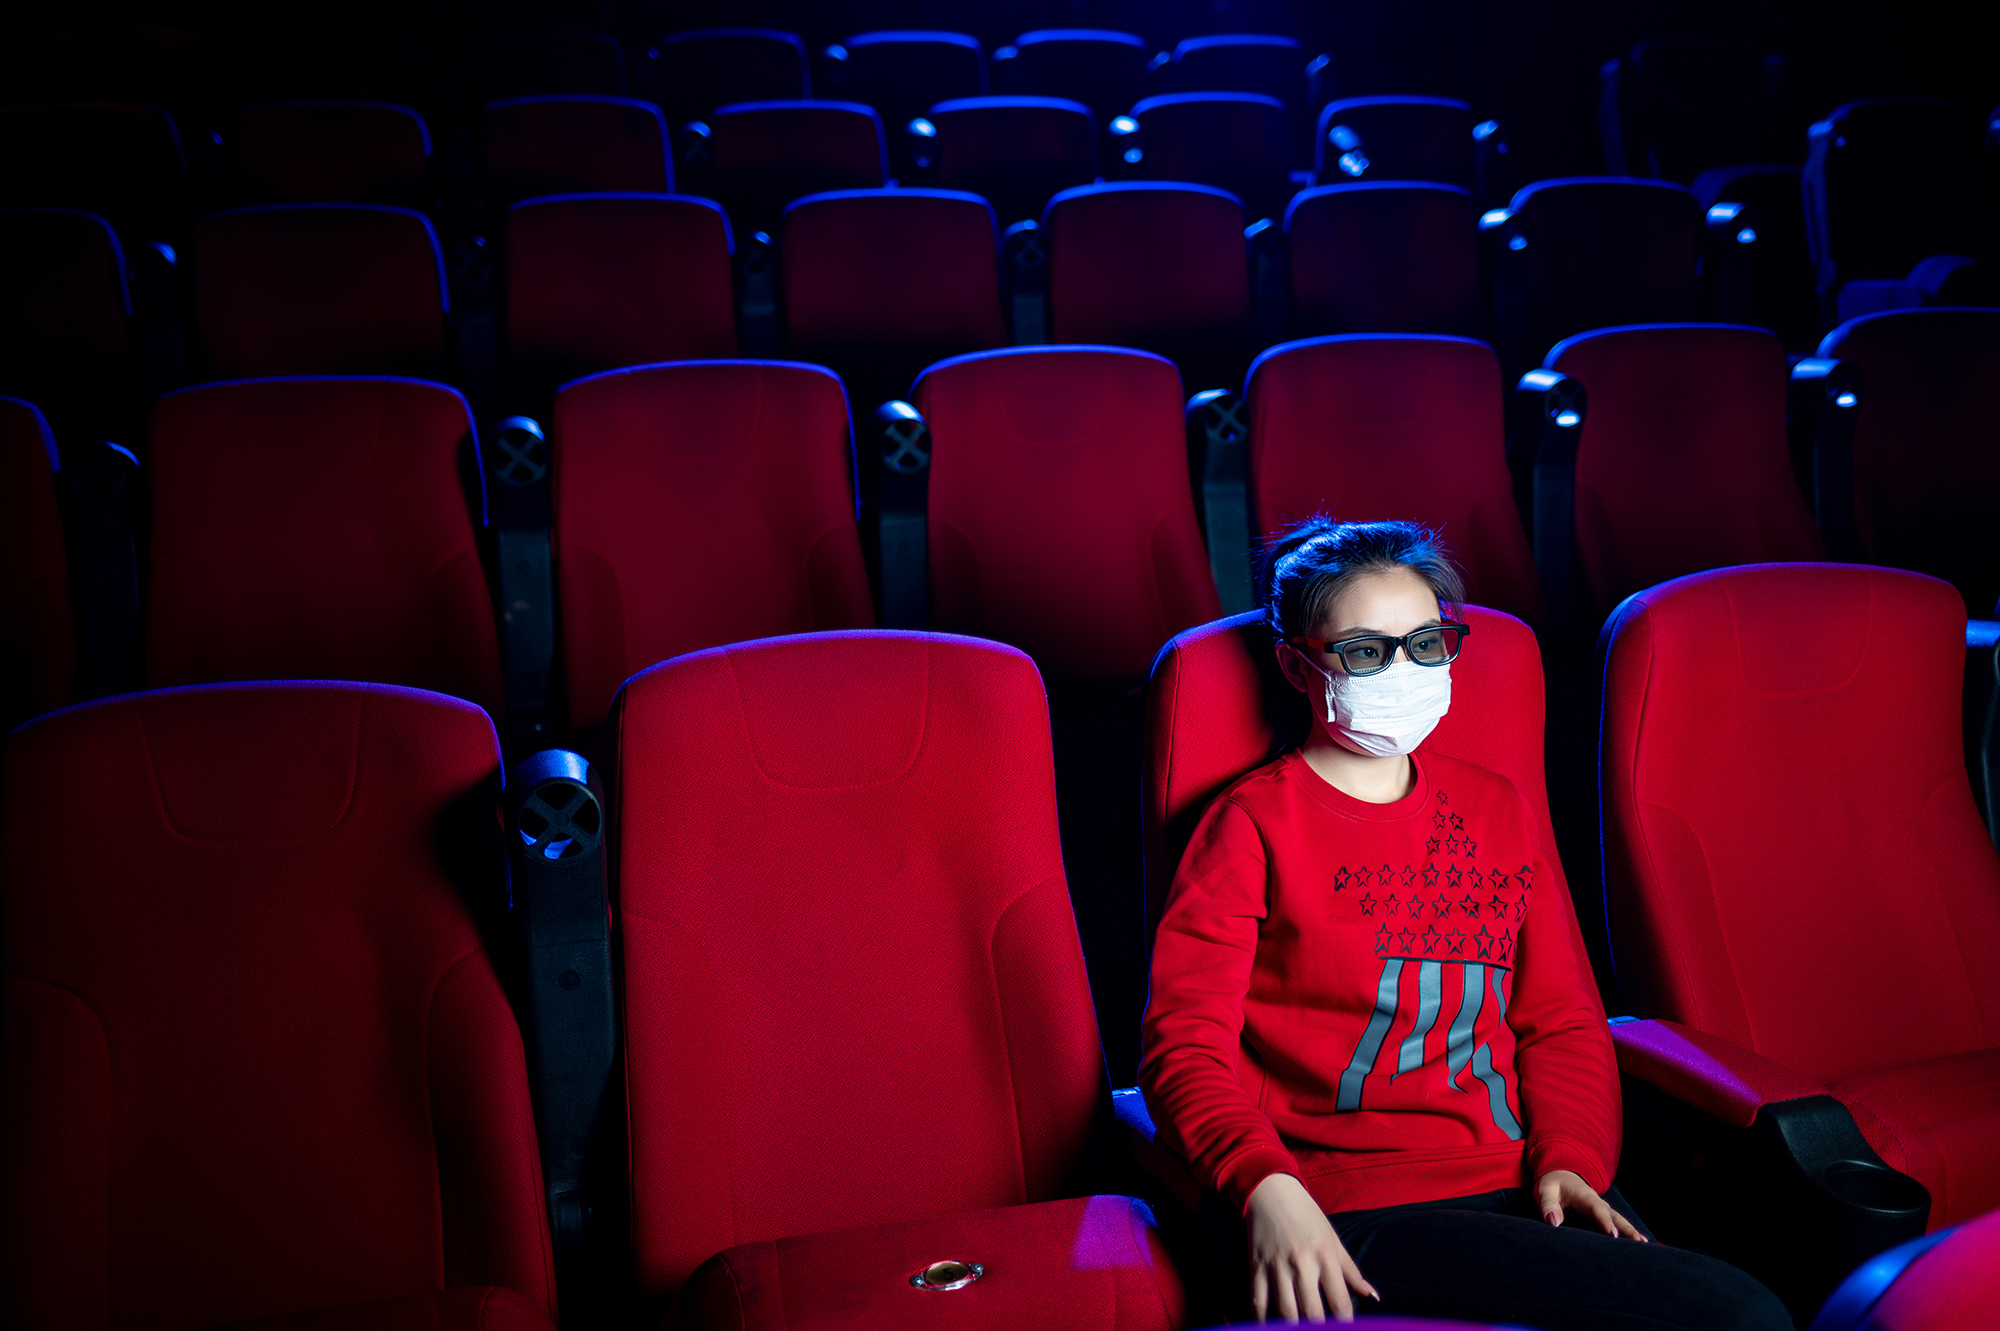 Woman at a cinema. (Image: Shutterstock)